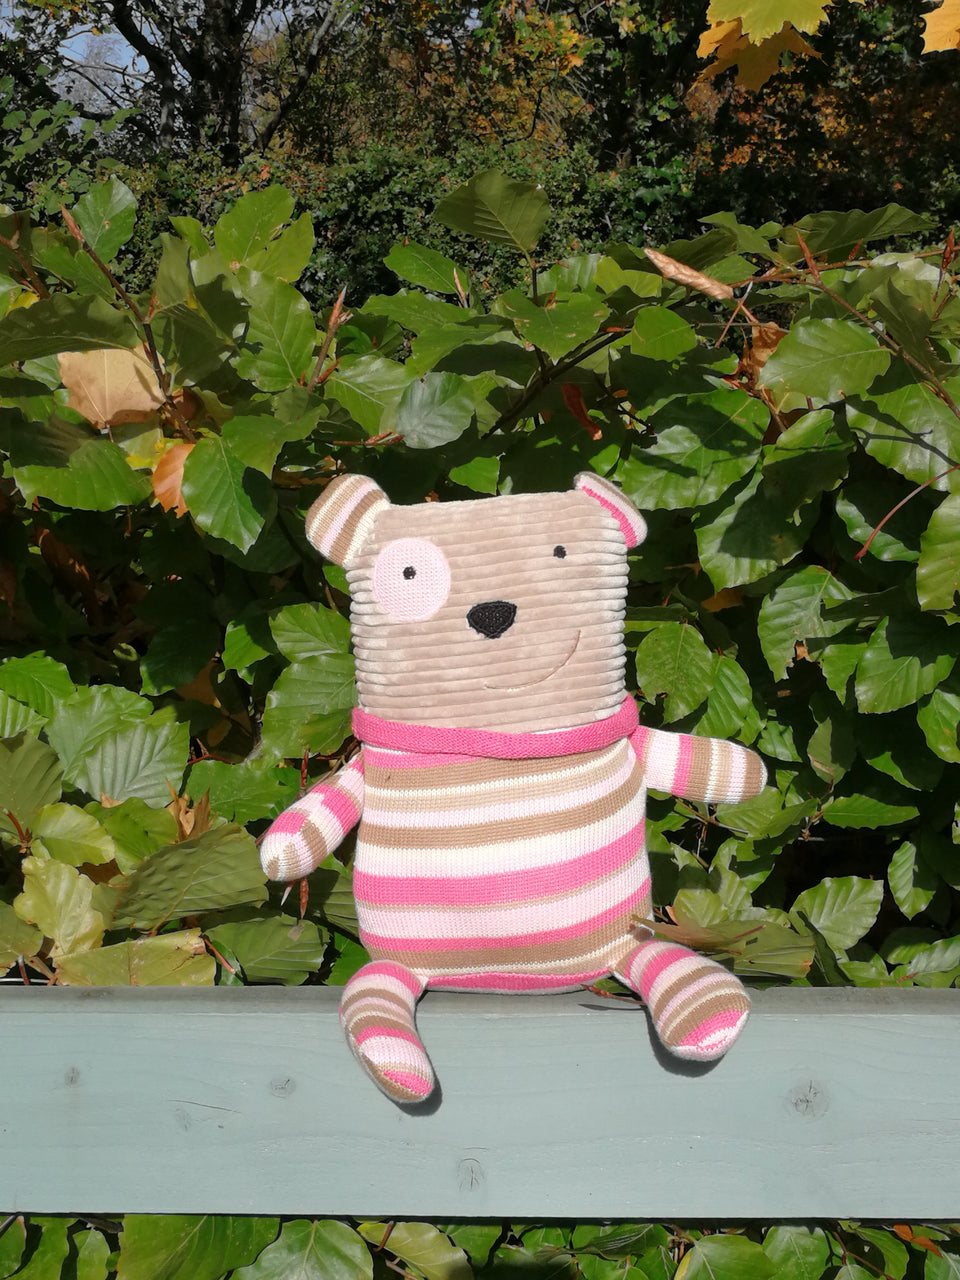 Hermione dog is made from ribbed and knitted fabrics for little fingers to explore.  With a pink striped tummy, arms and legs designed for small hands to grab. A lovely gift for a newborn or child.